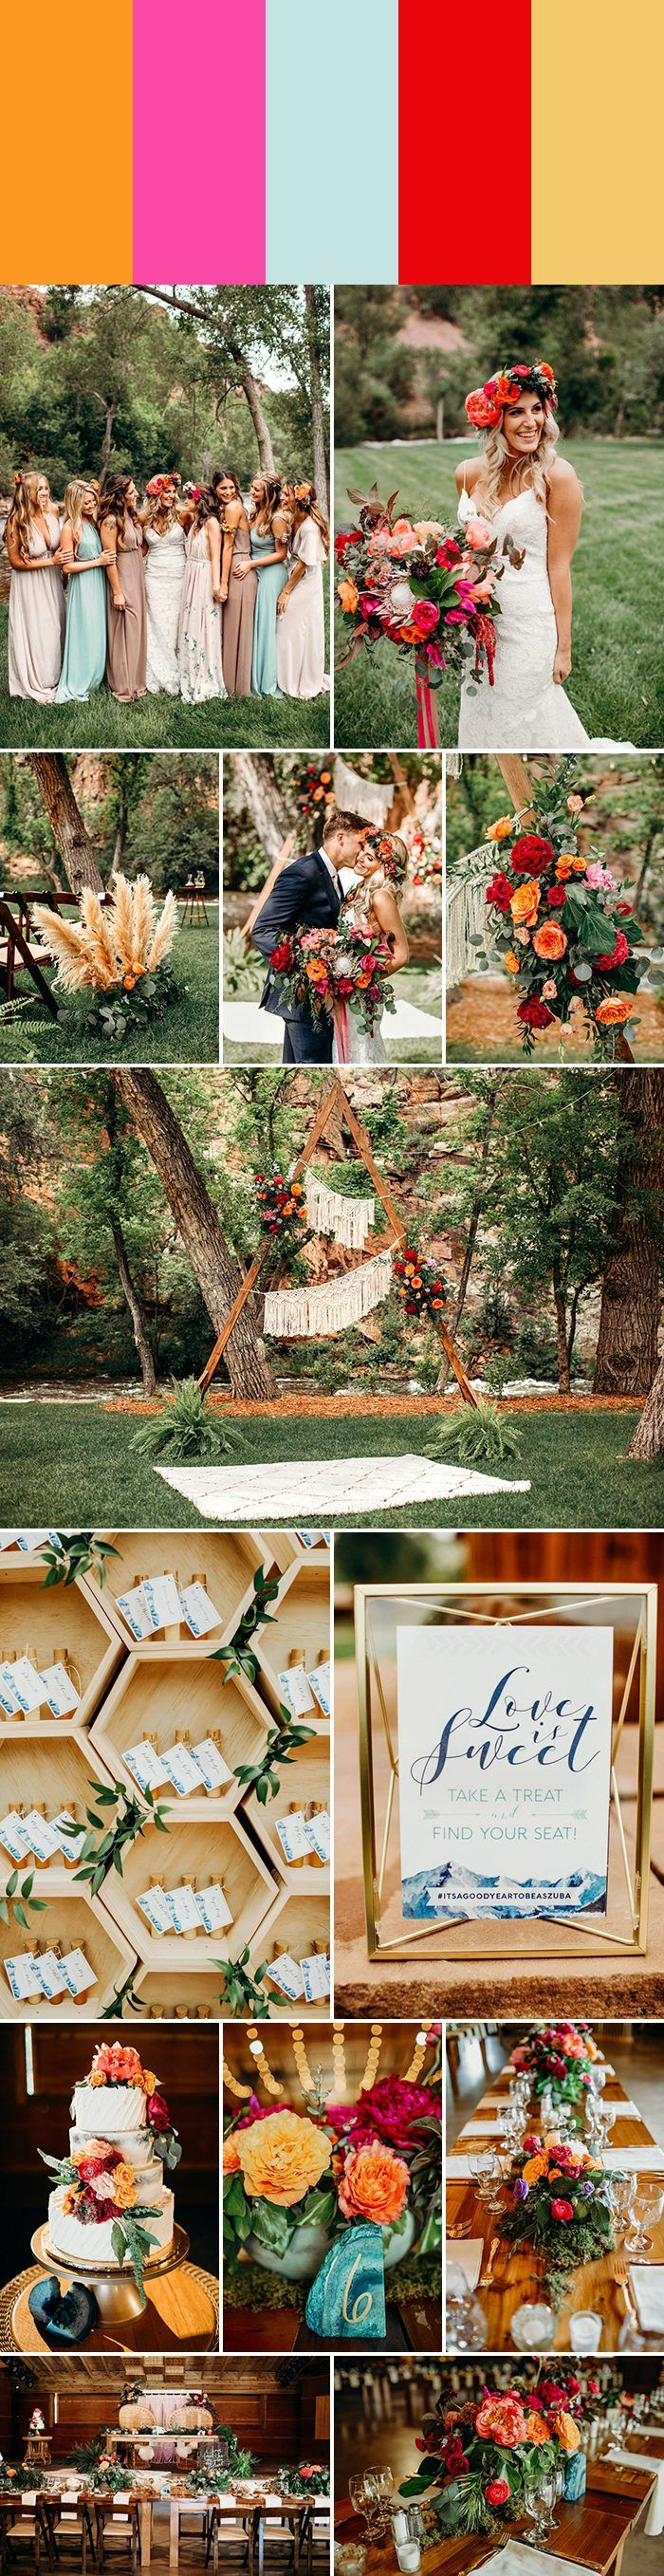 Spring wedding color palette idea: tangerine + hot pink + pale turquoise + fire engine red + dusty ochre | Image by Shannon Lee Miller